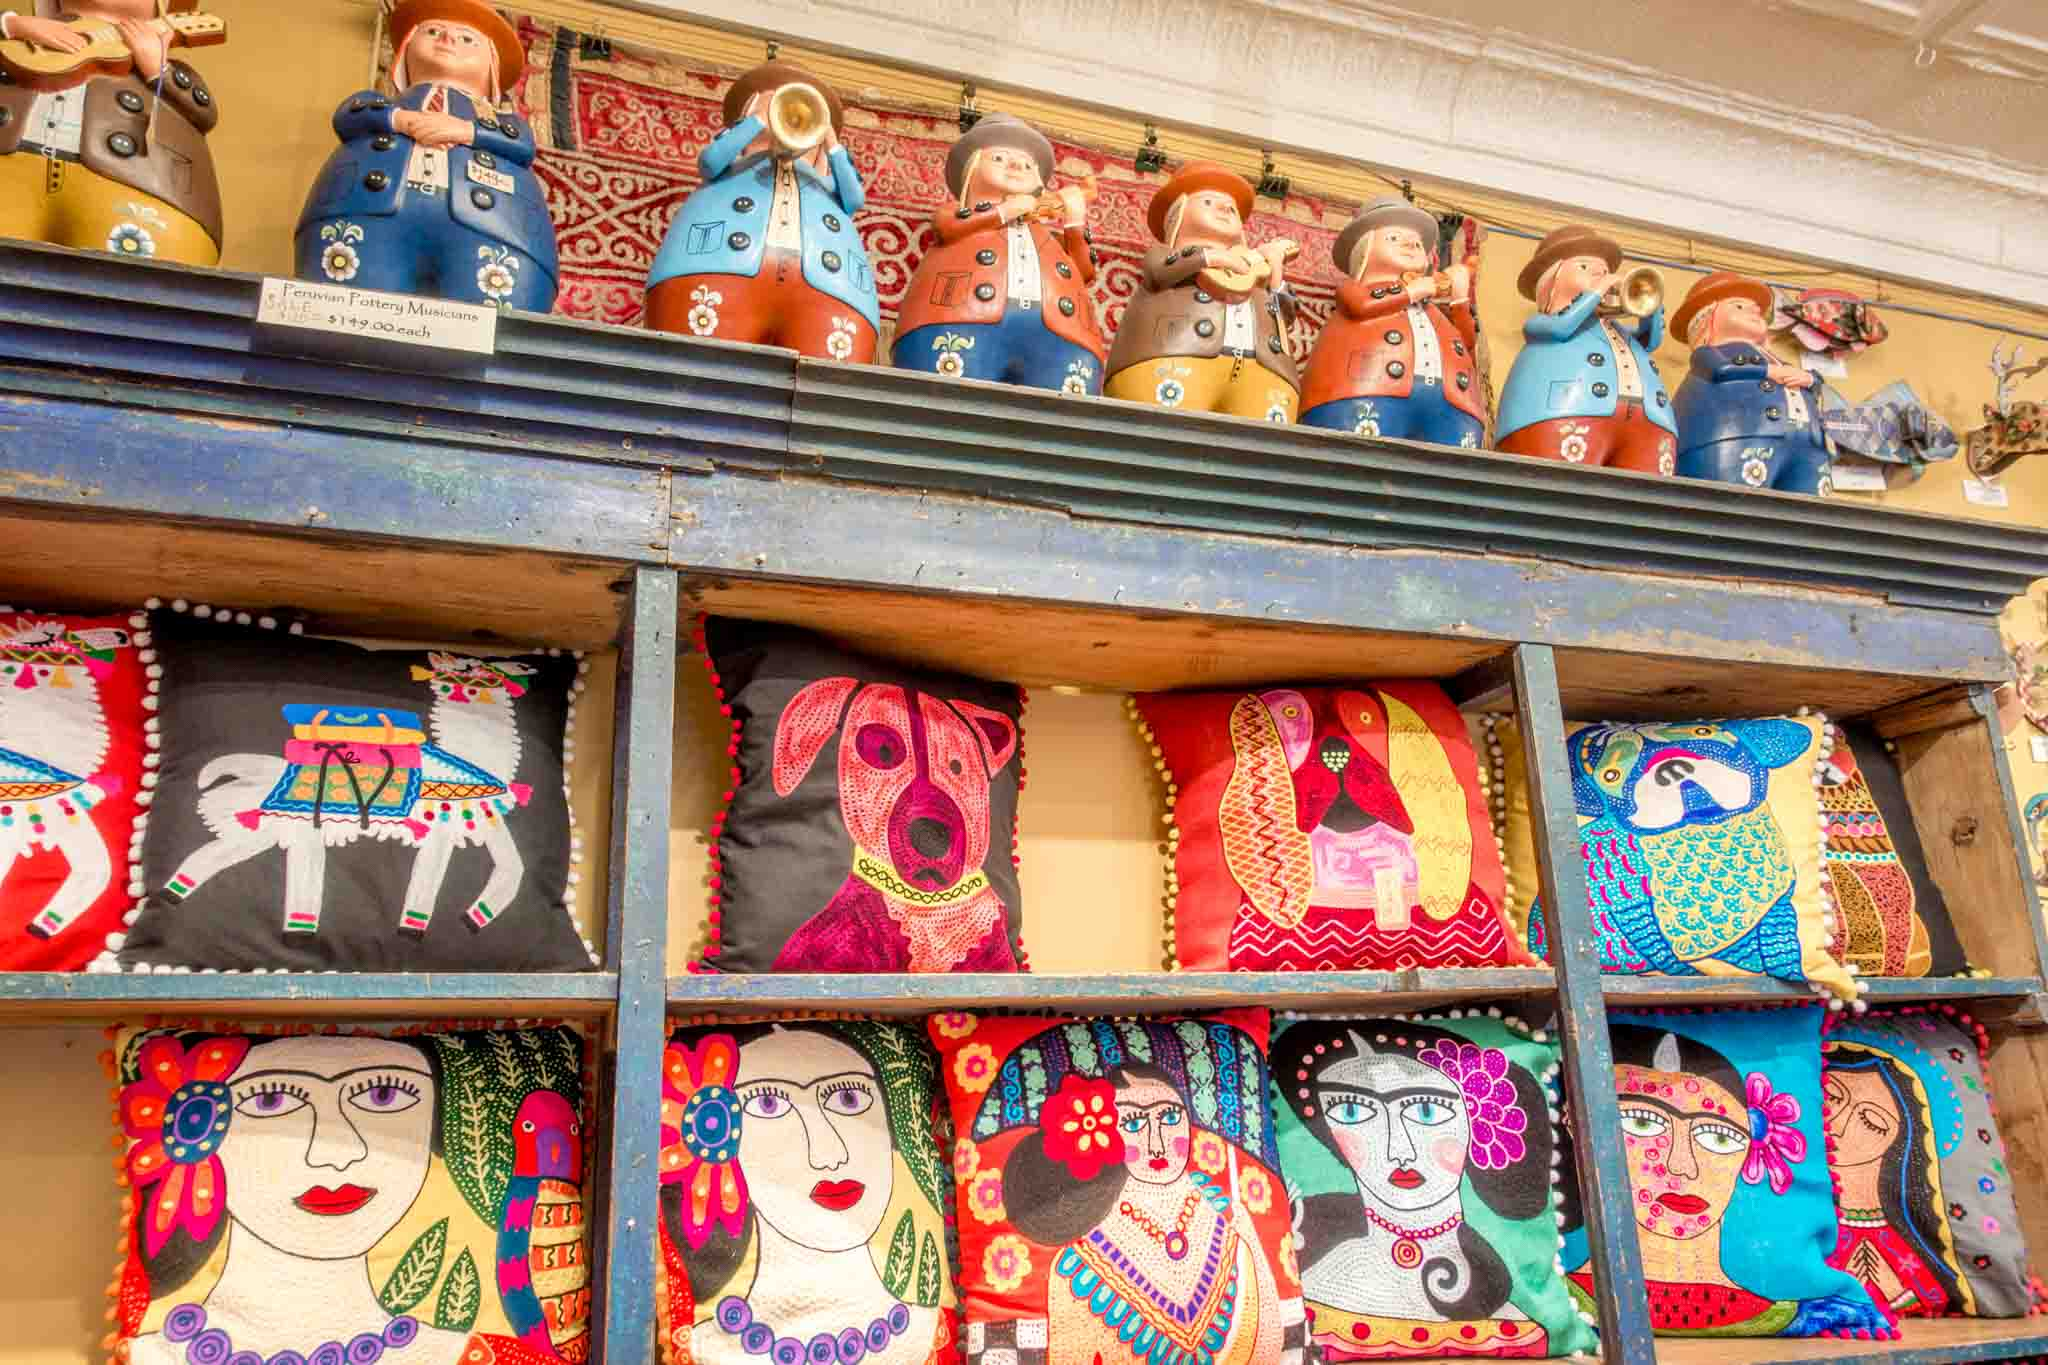 Pillows and musician statues for sale in store